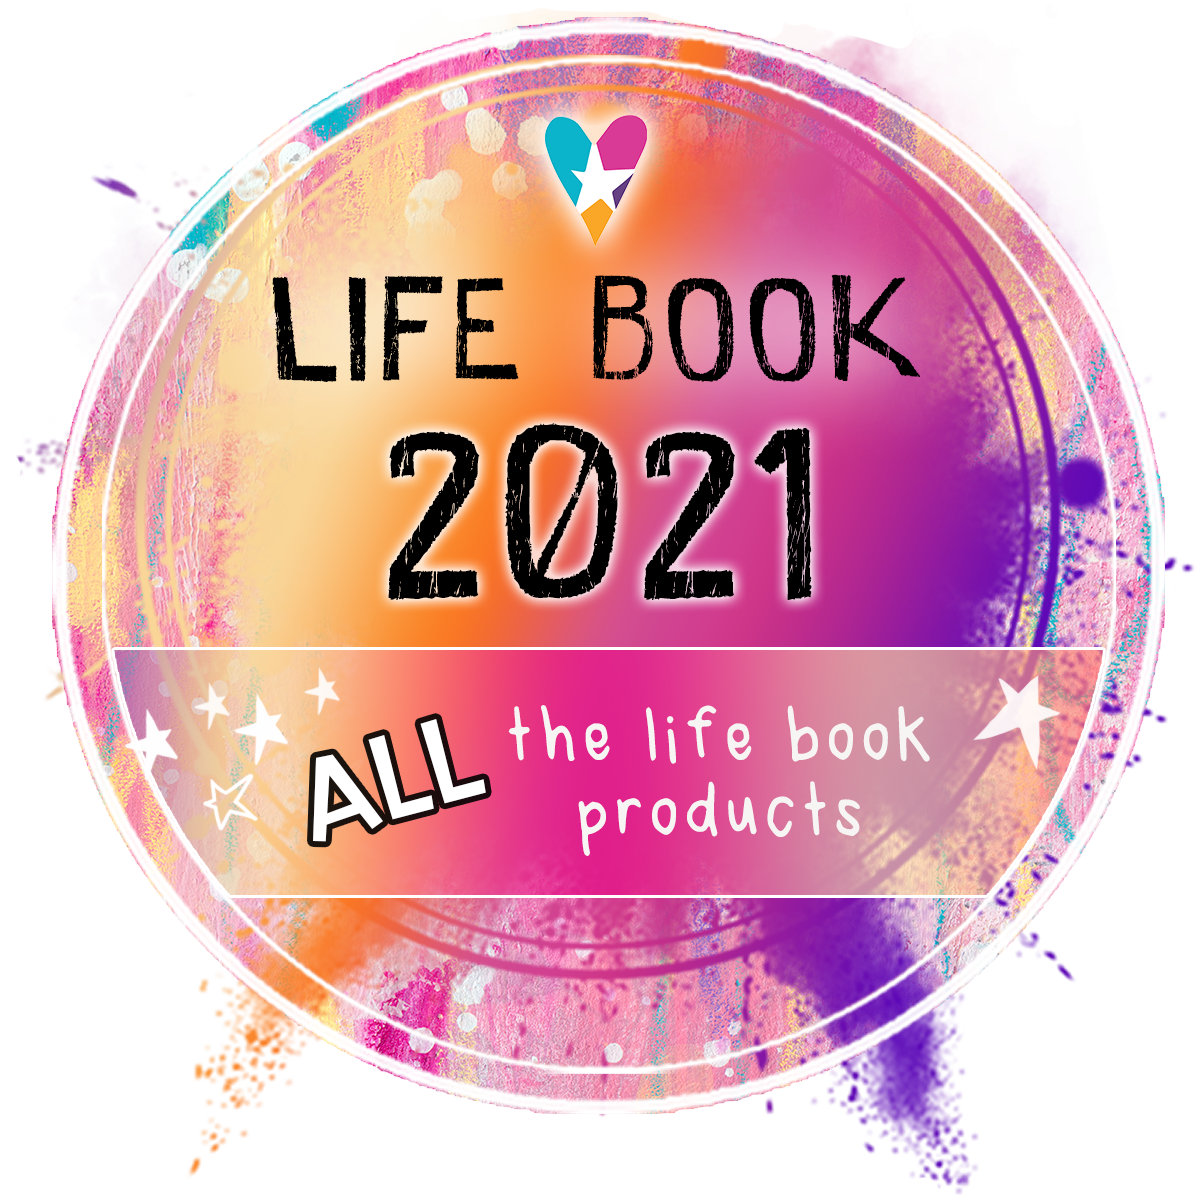 LB2021 ALL (the life book products) for total and complete Life Book junkies! :))